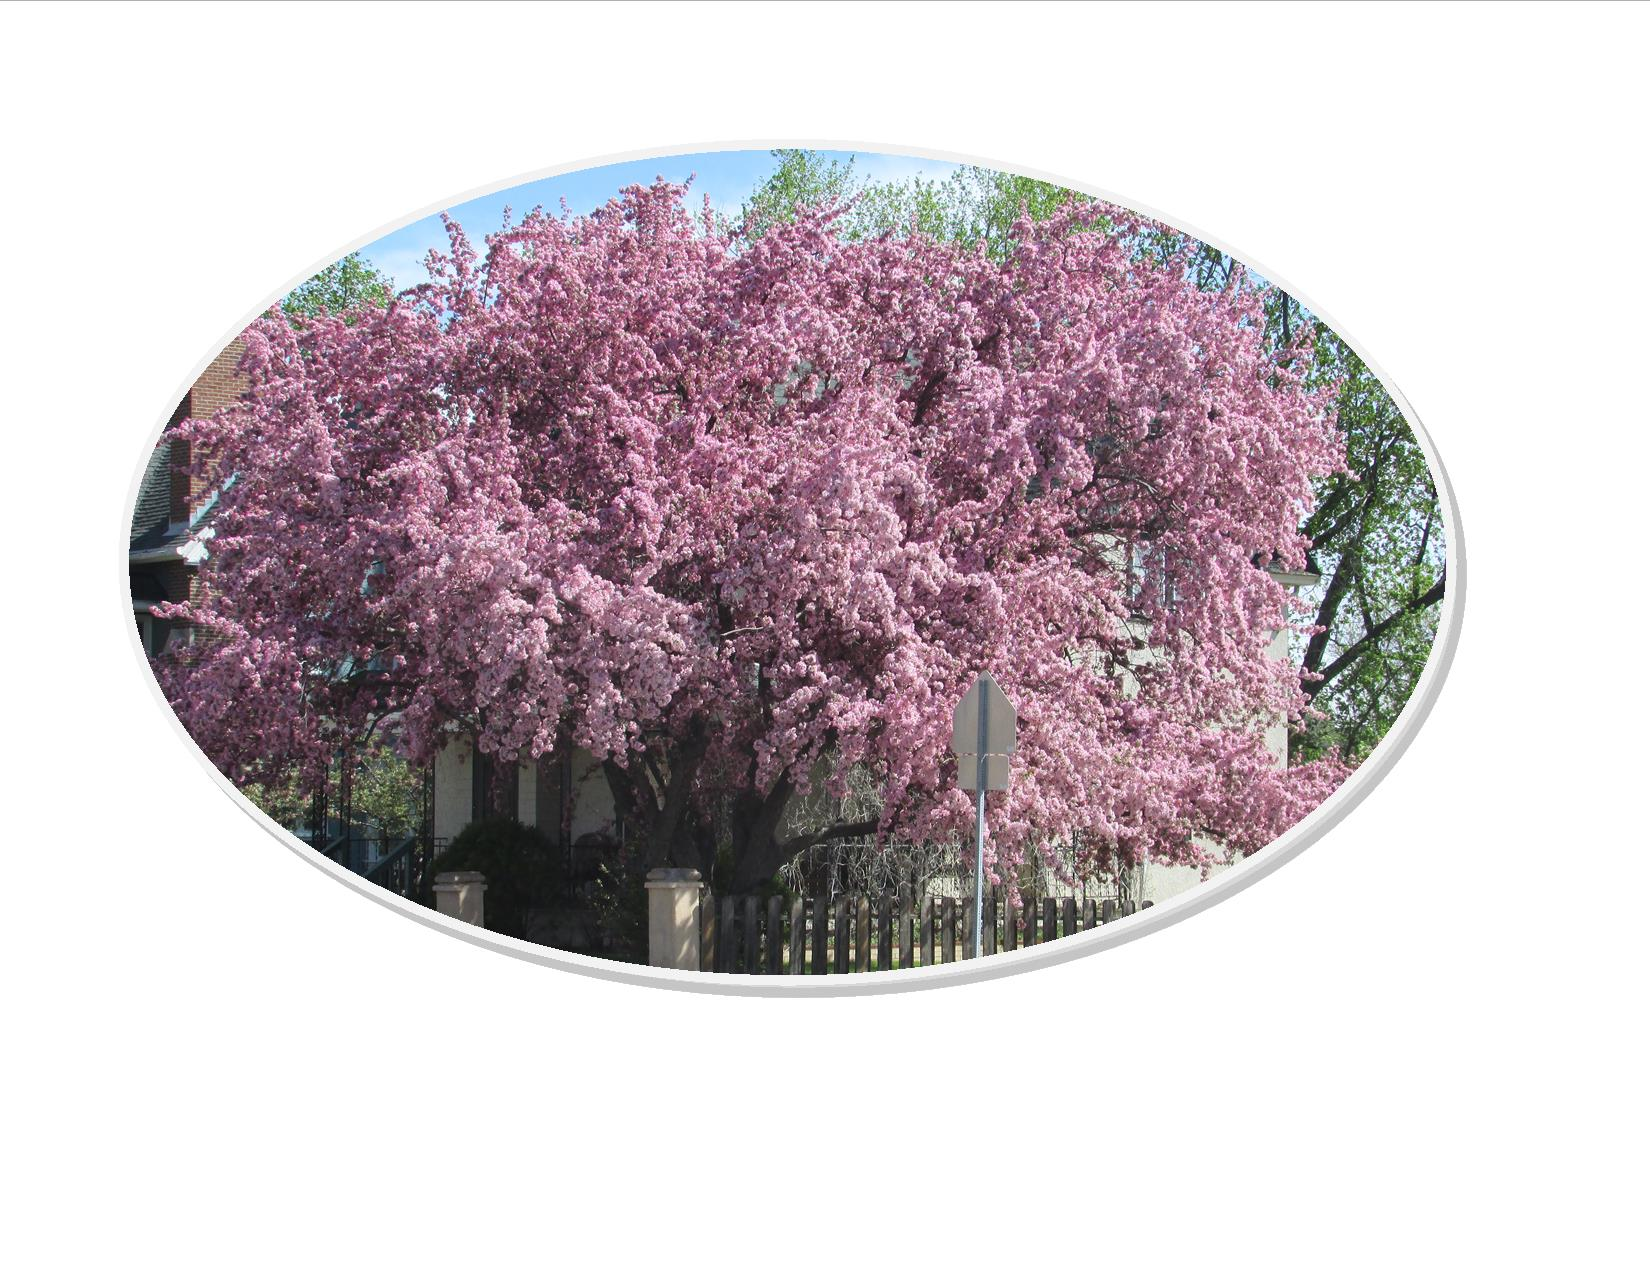 flowering-tree-spring-2016-oval---Copy.jpg